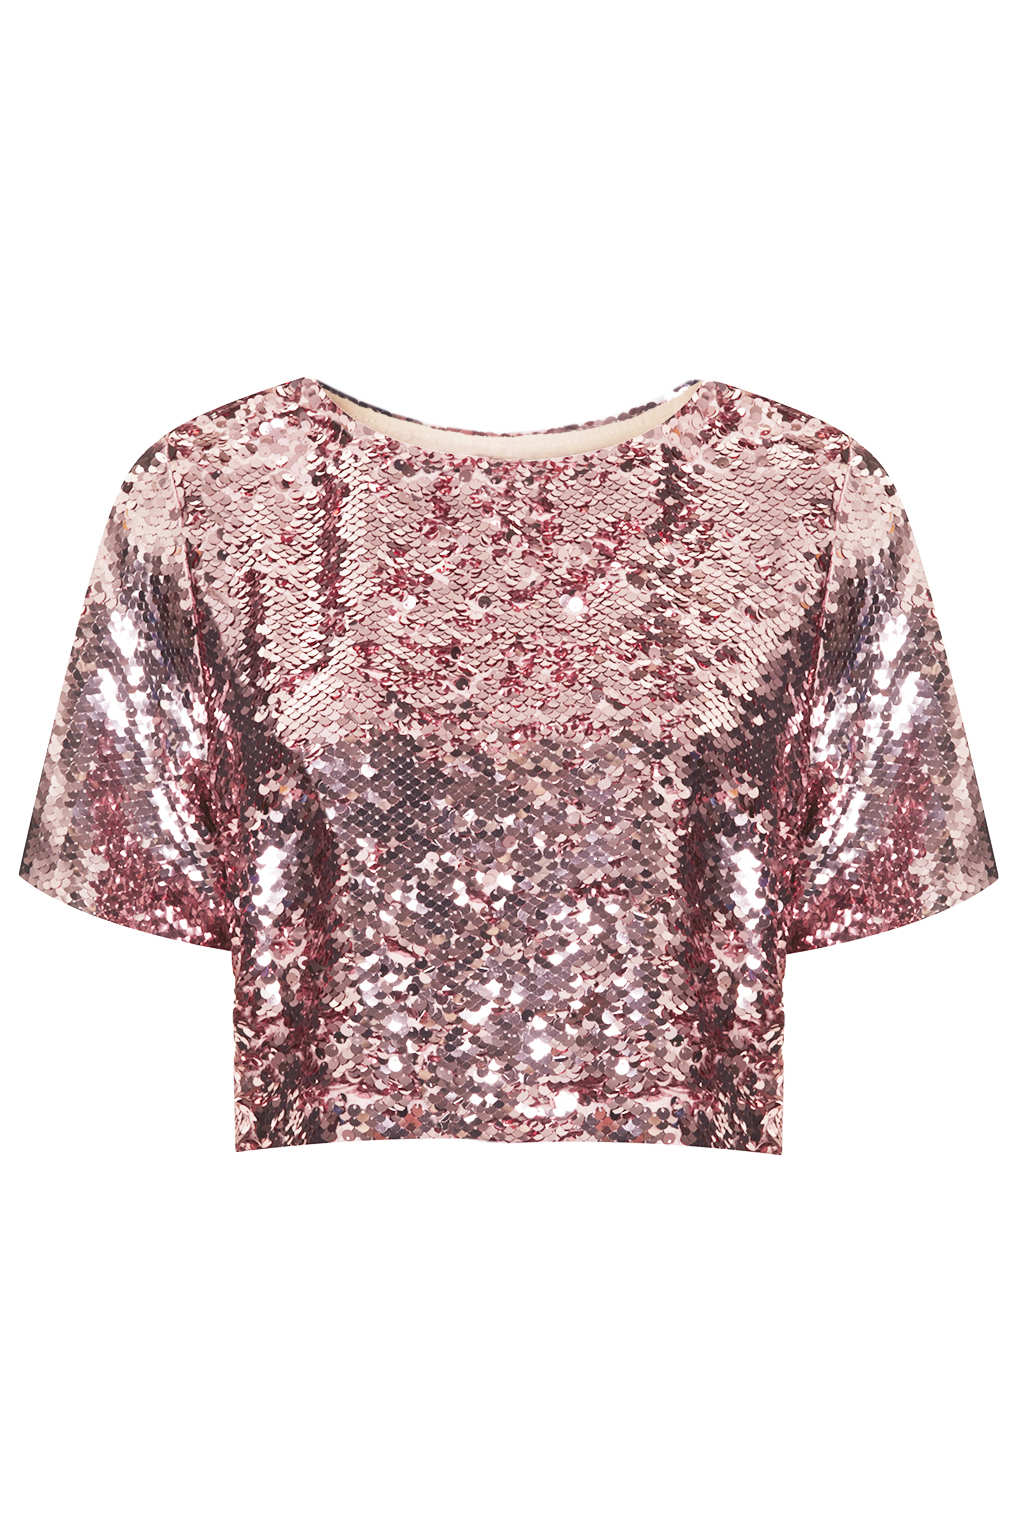 Pink Sequin Shirt | Artee Shirt